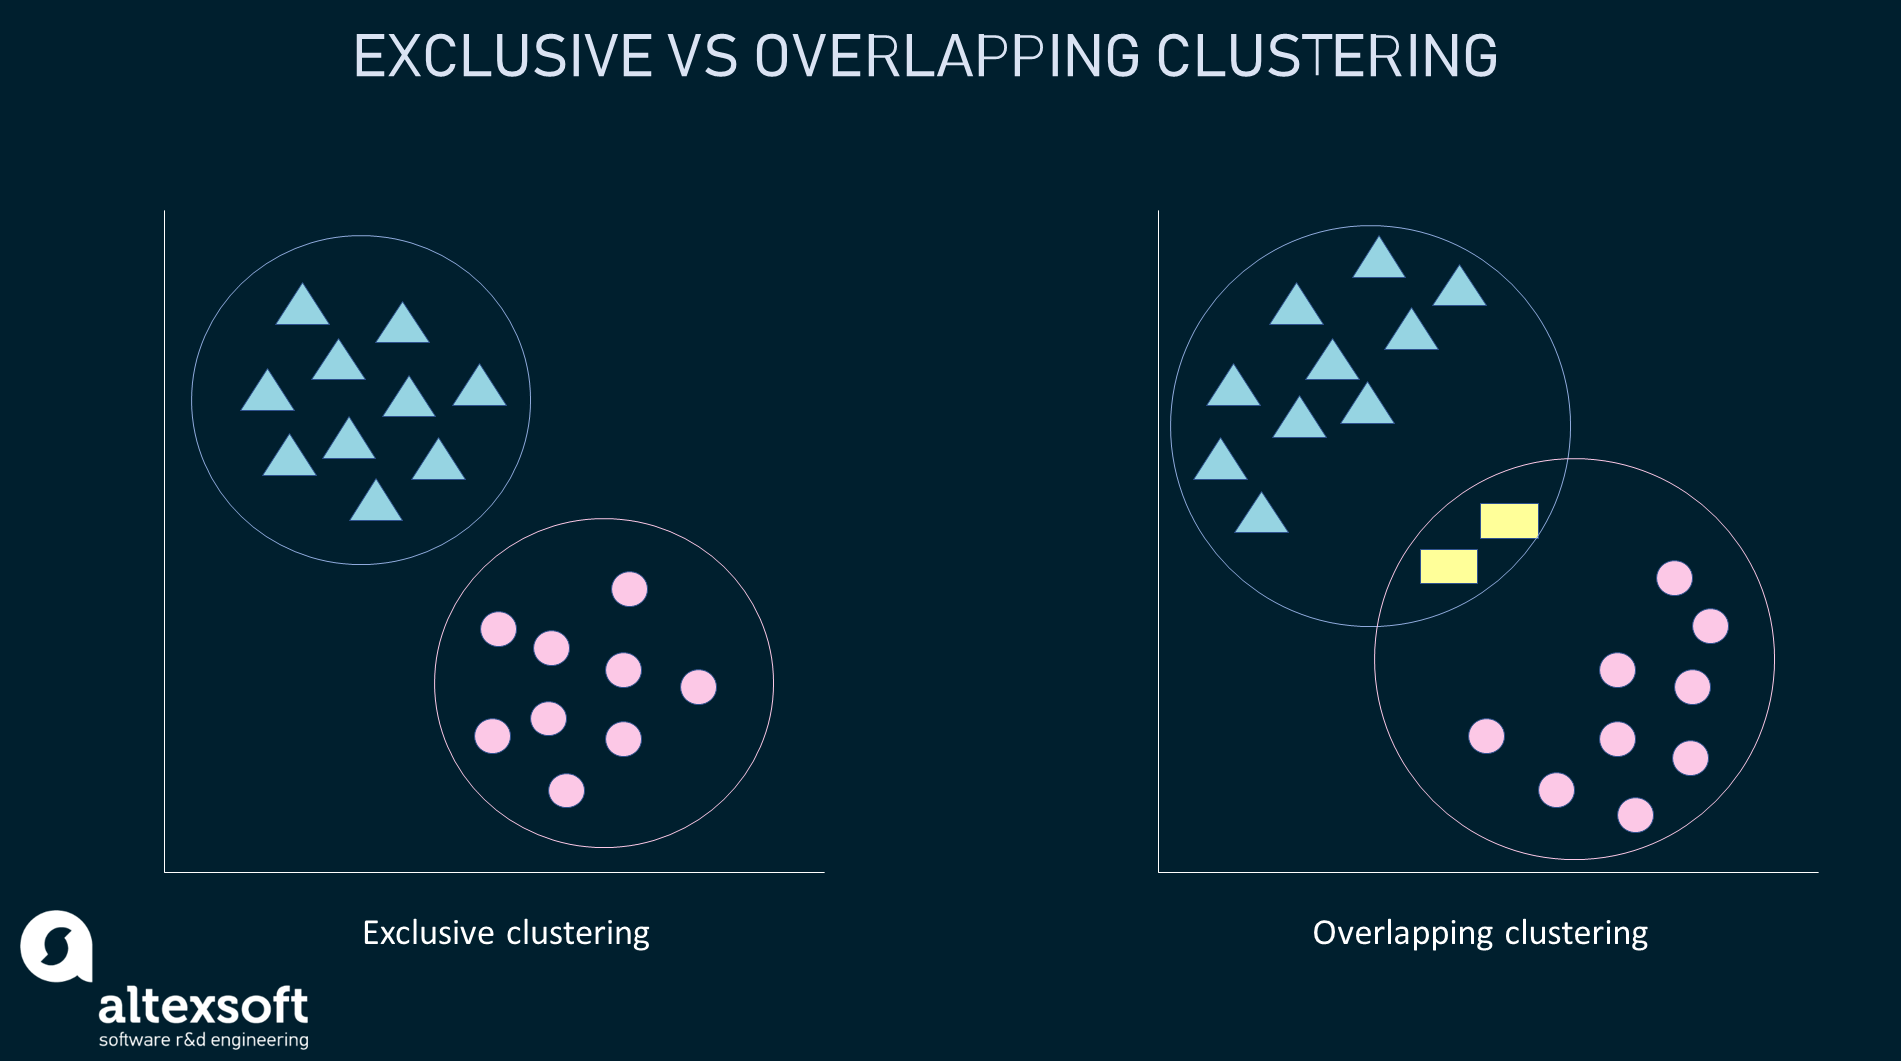 Exclusive vs overlapping clustering example